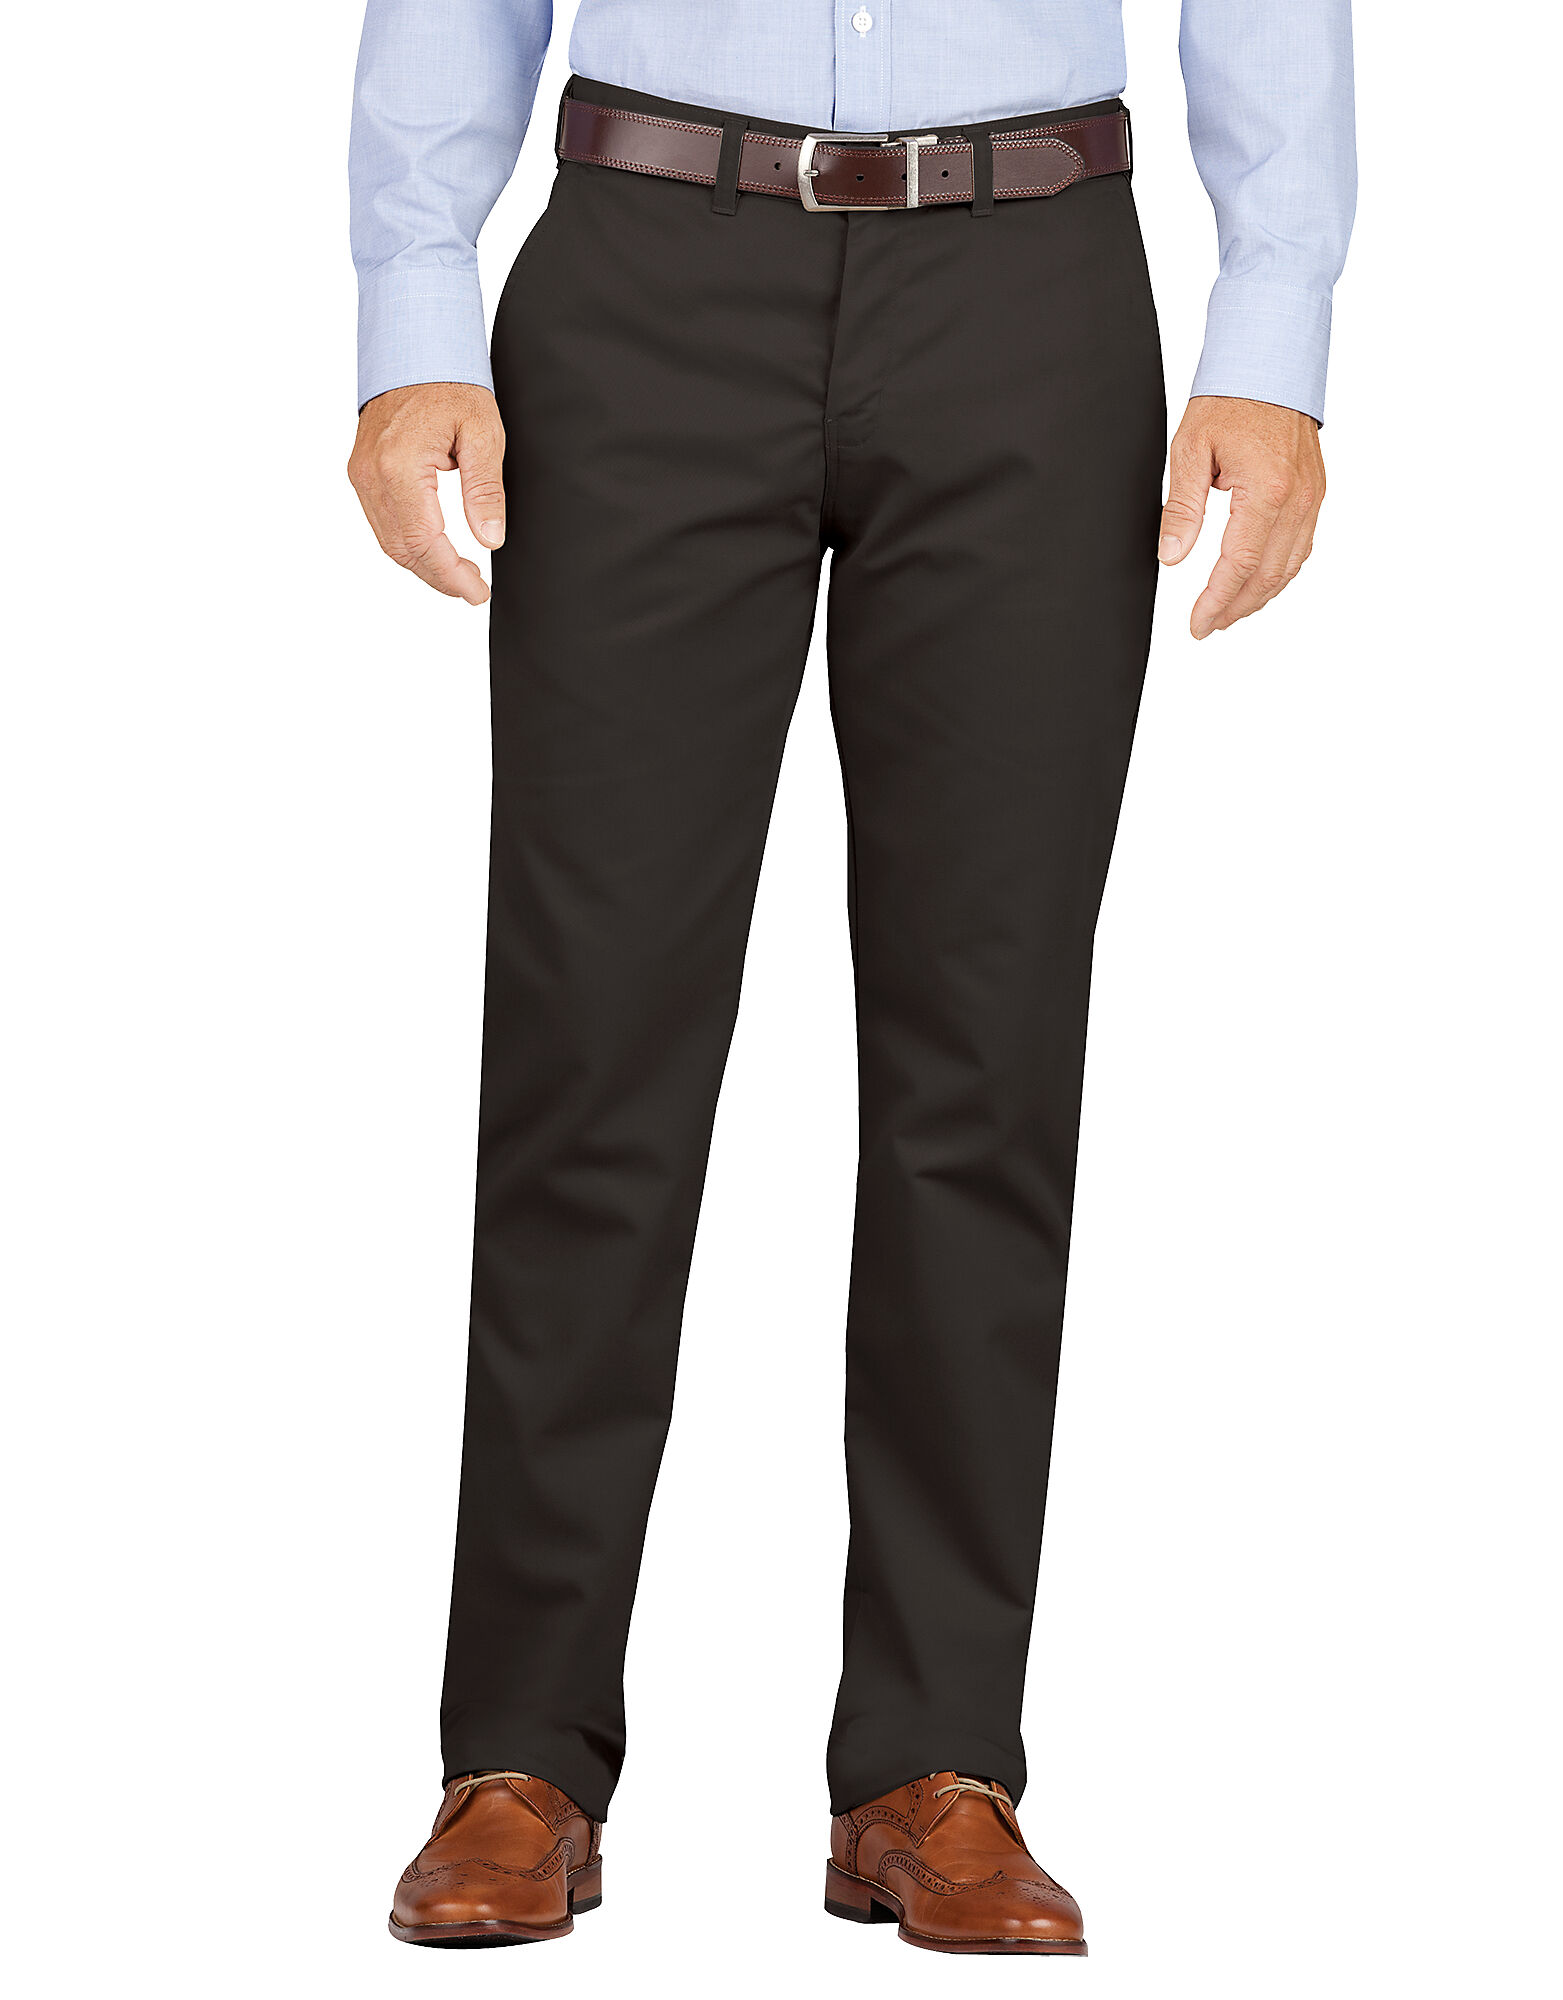 Khaki Dress Pants For Men Slit Fit Amp Tapered Leg Dickies